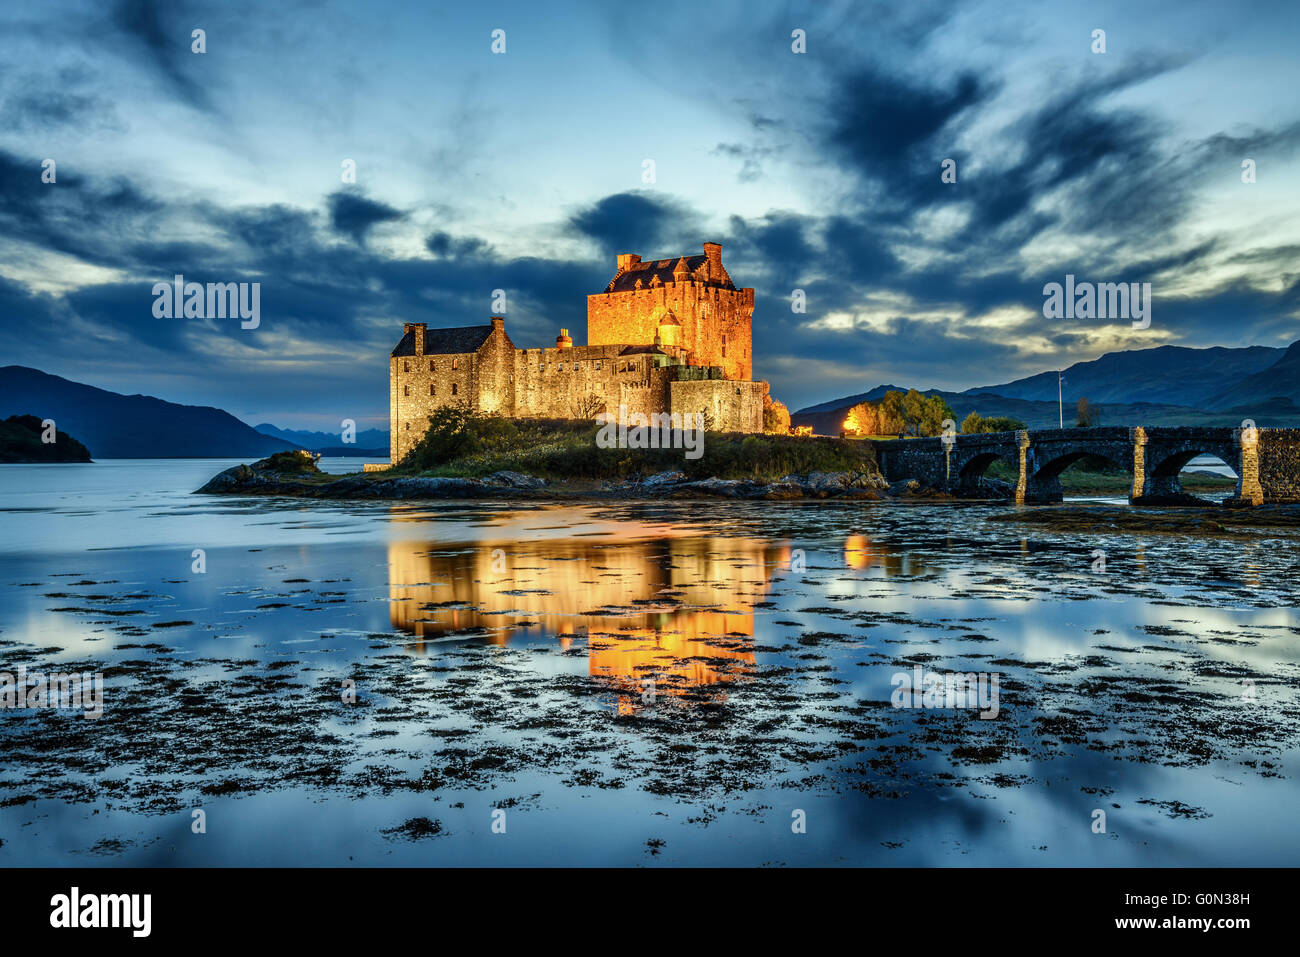 Eilean Donan Castle during blue hour after sunset. - Stock Image